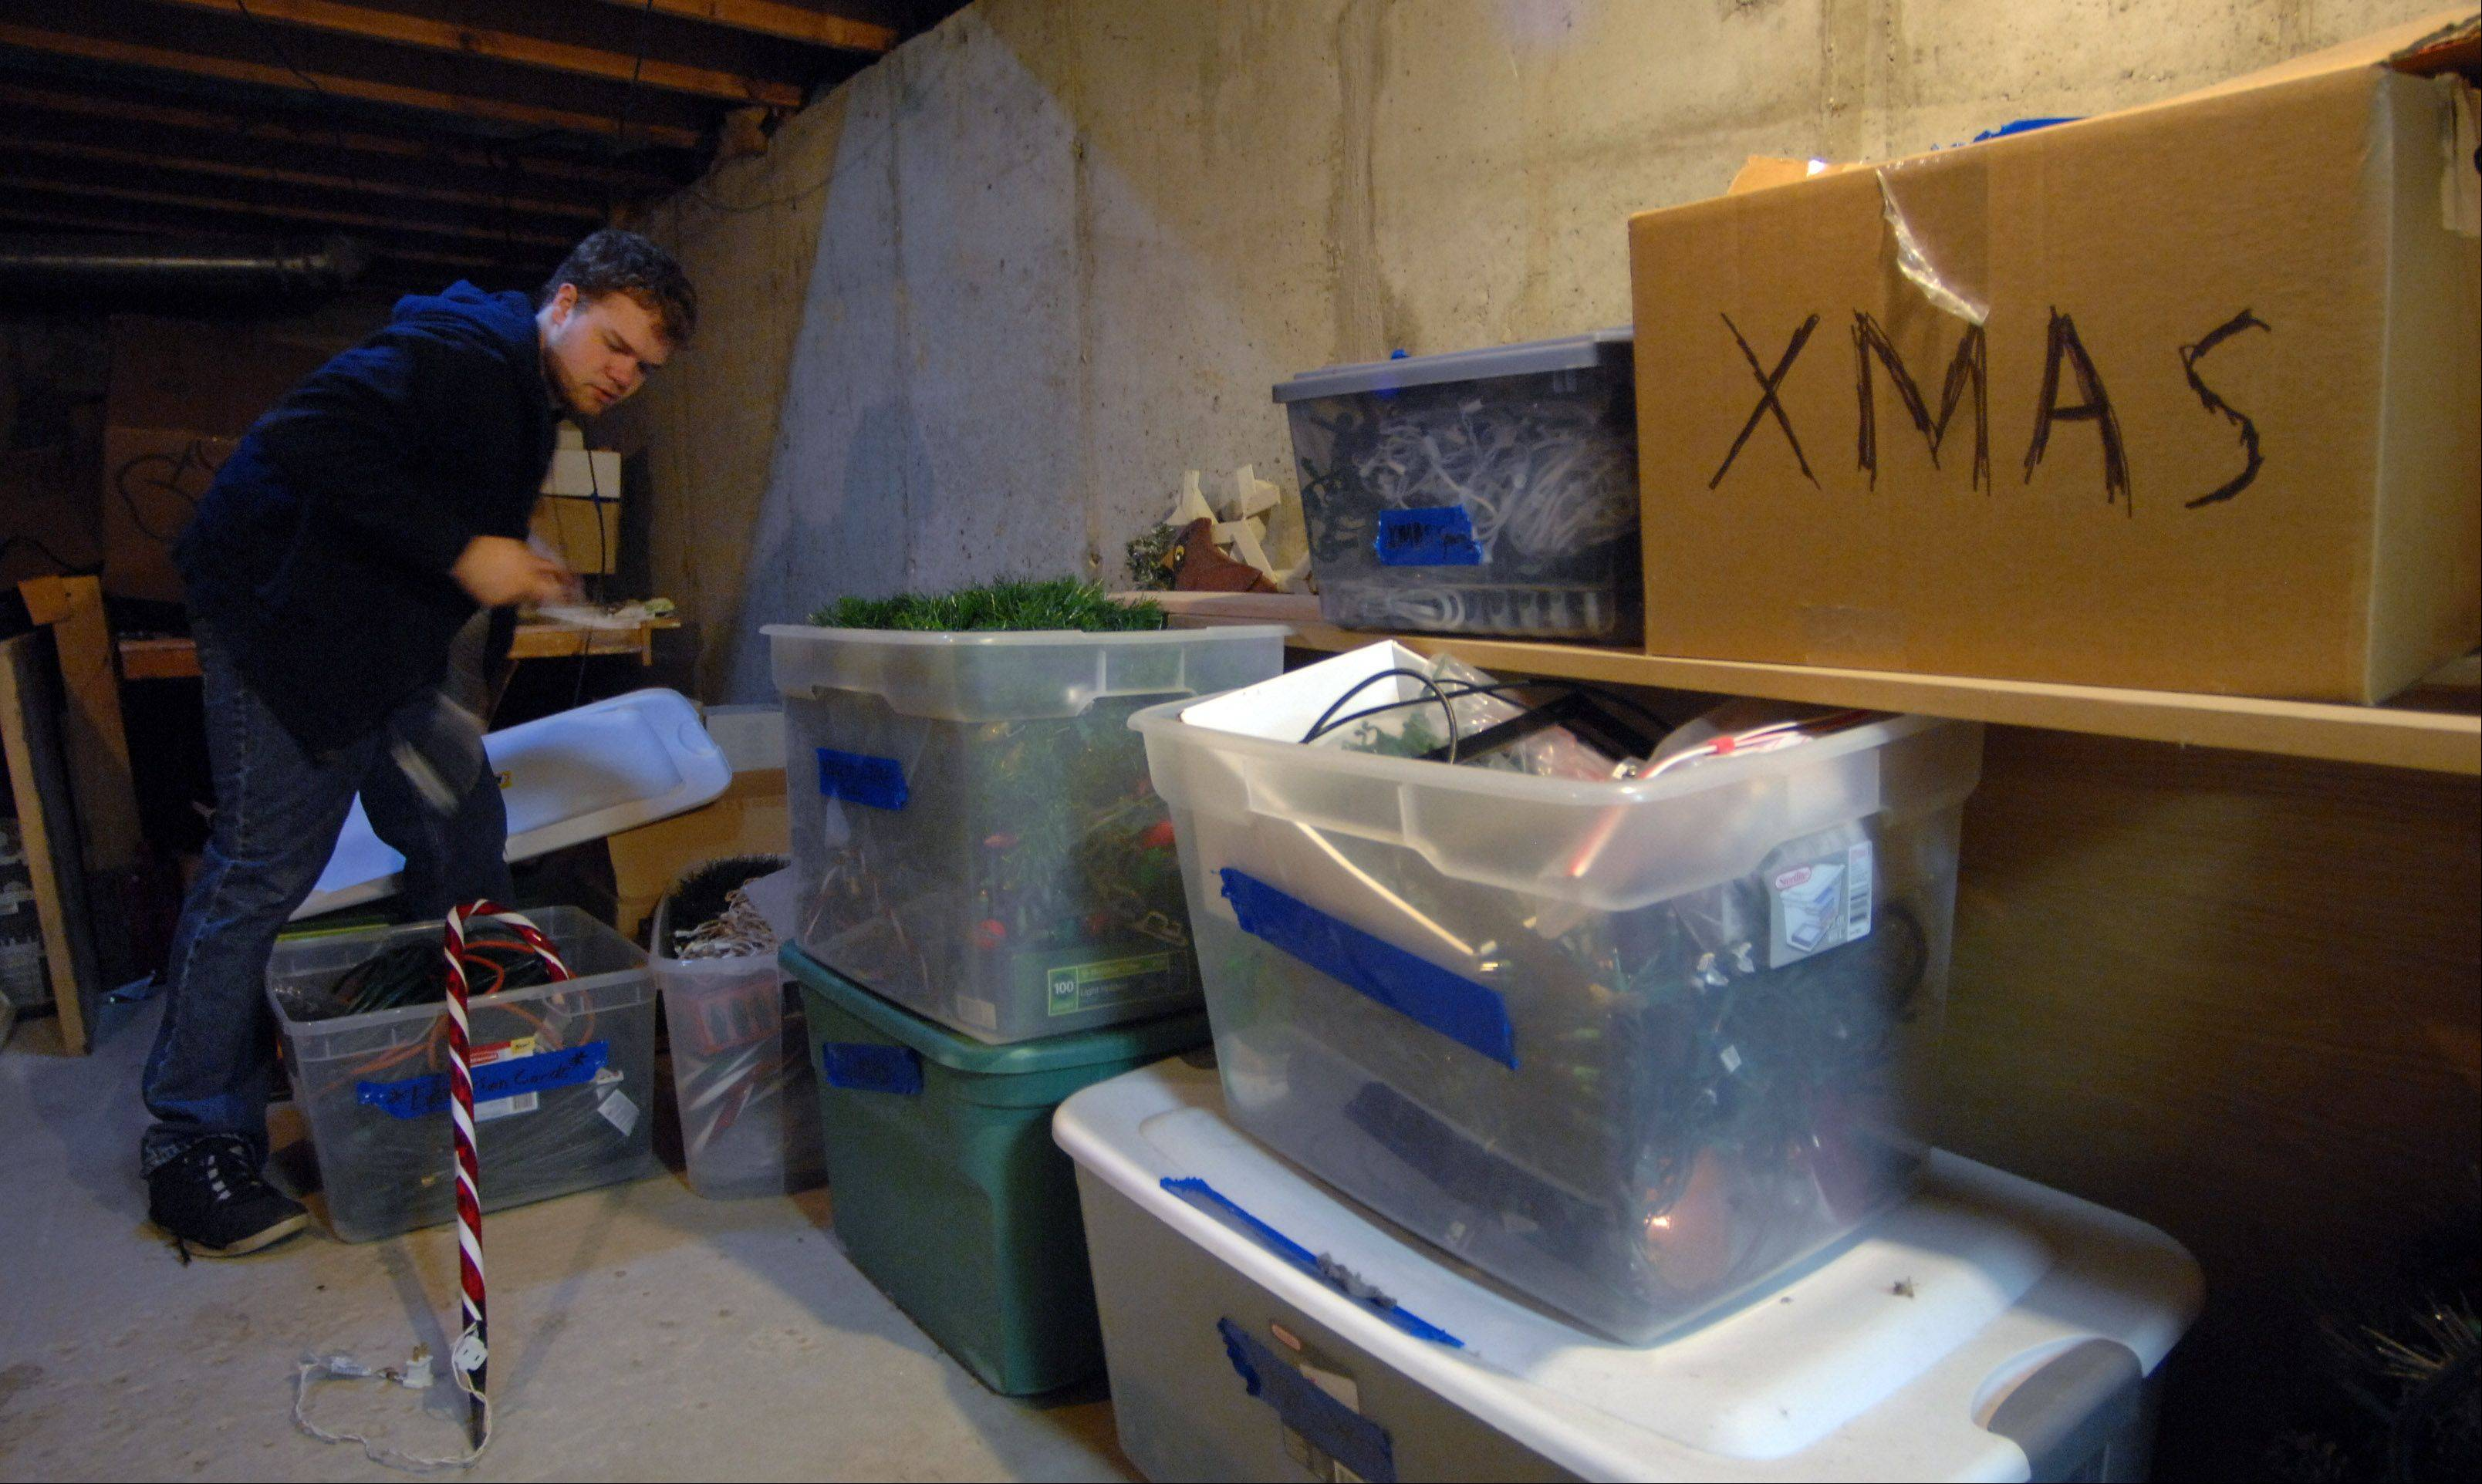 Gurnee resident Adam Germann unpacks his Christmas lights from his storage area in the basement.